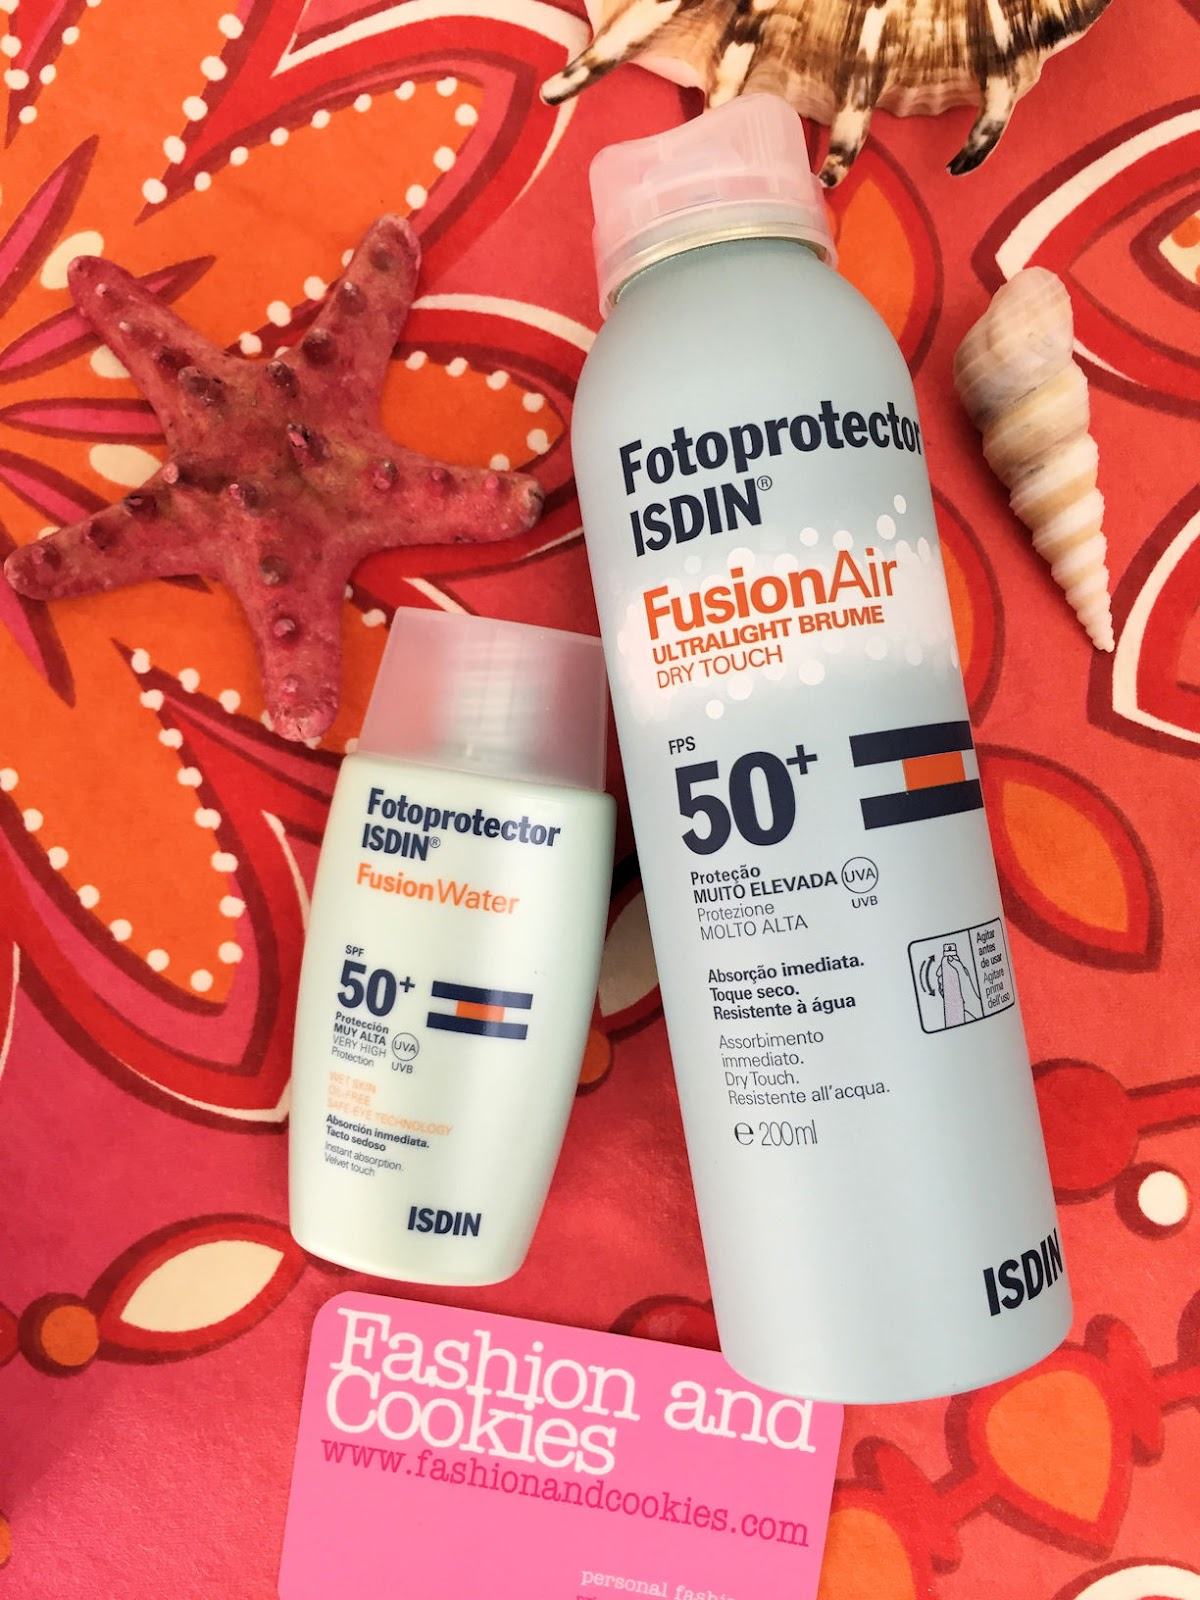 ISDIN Fotoprotector Fusion Water and Fusion Air on Fashion and Cookies beauty blog, beauty blogger